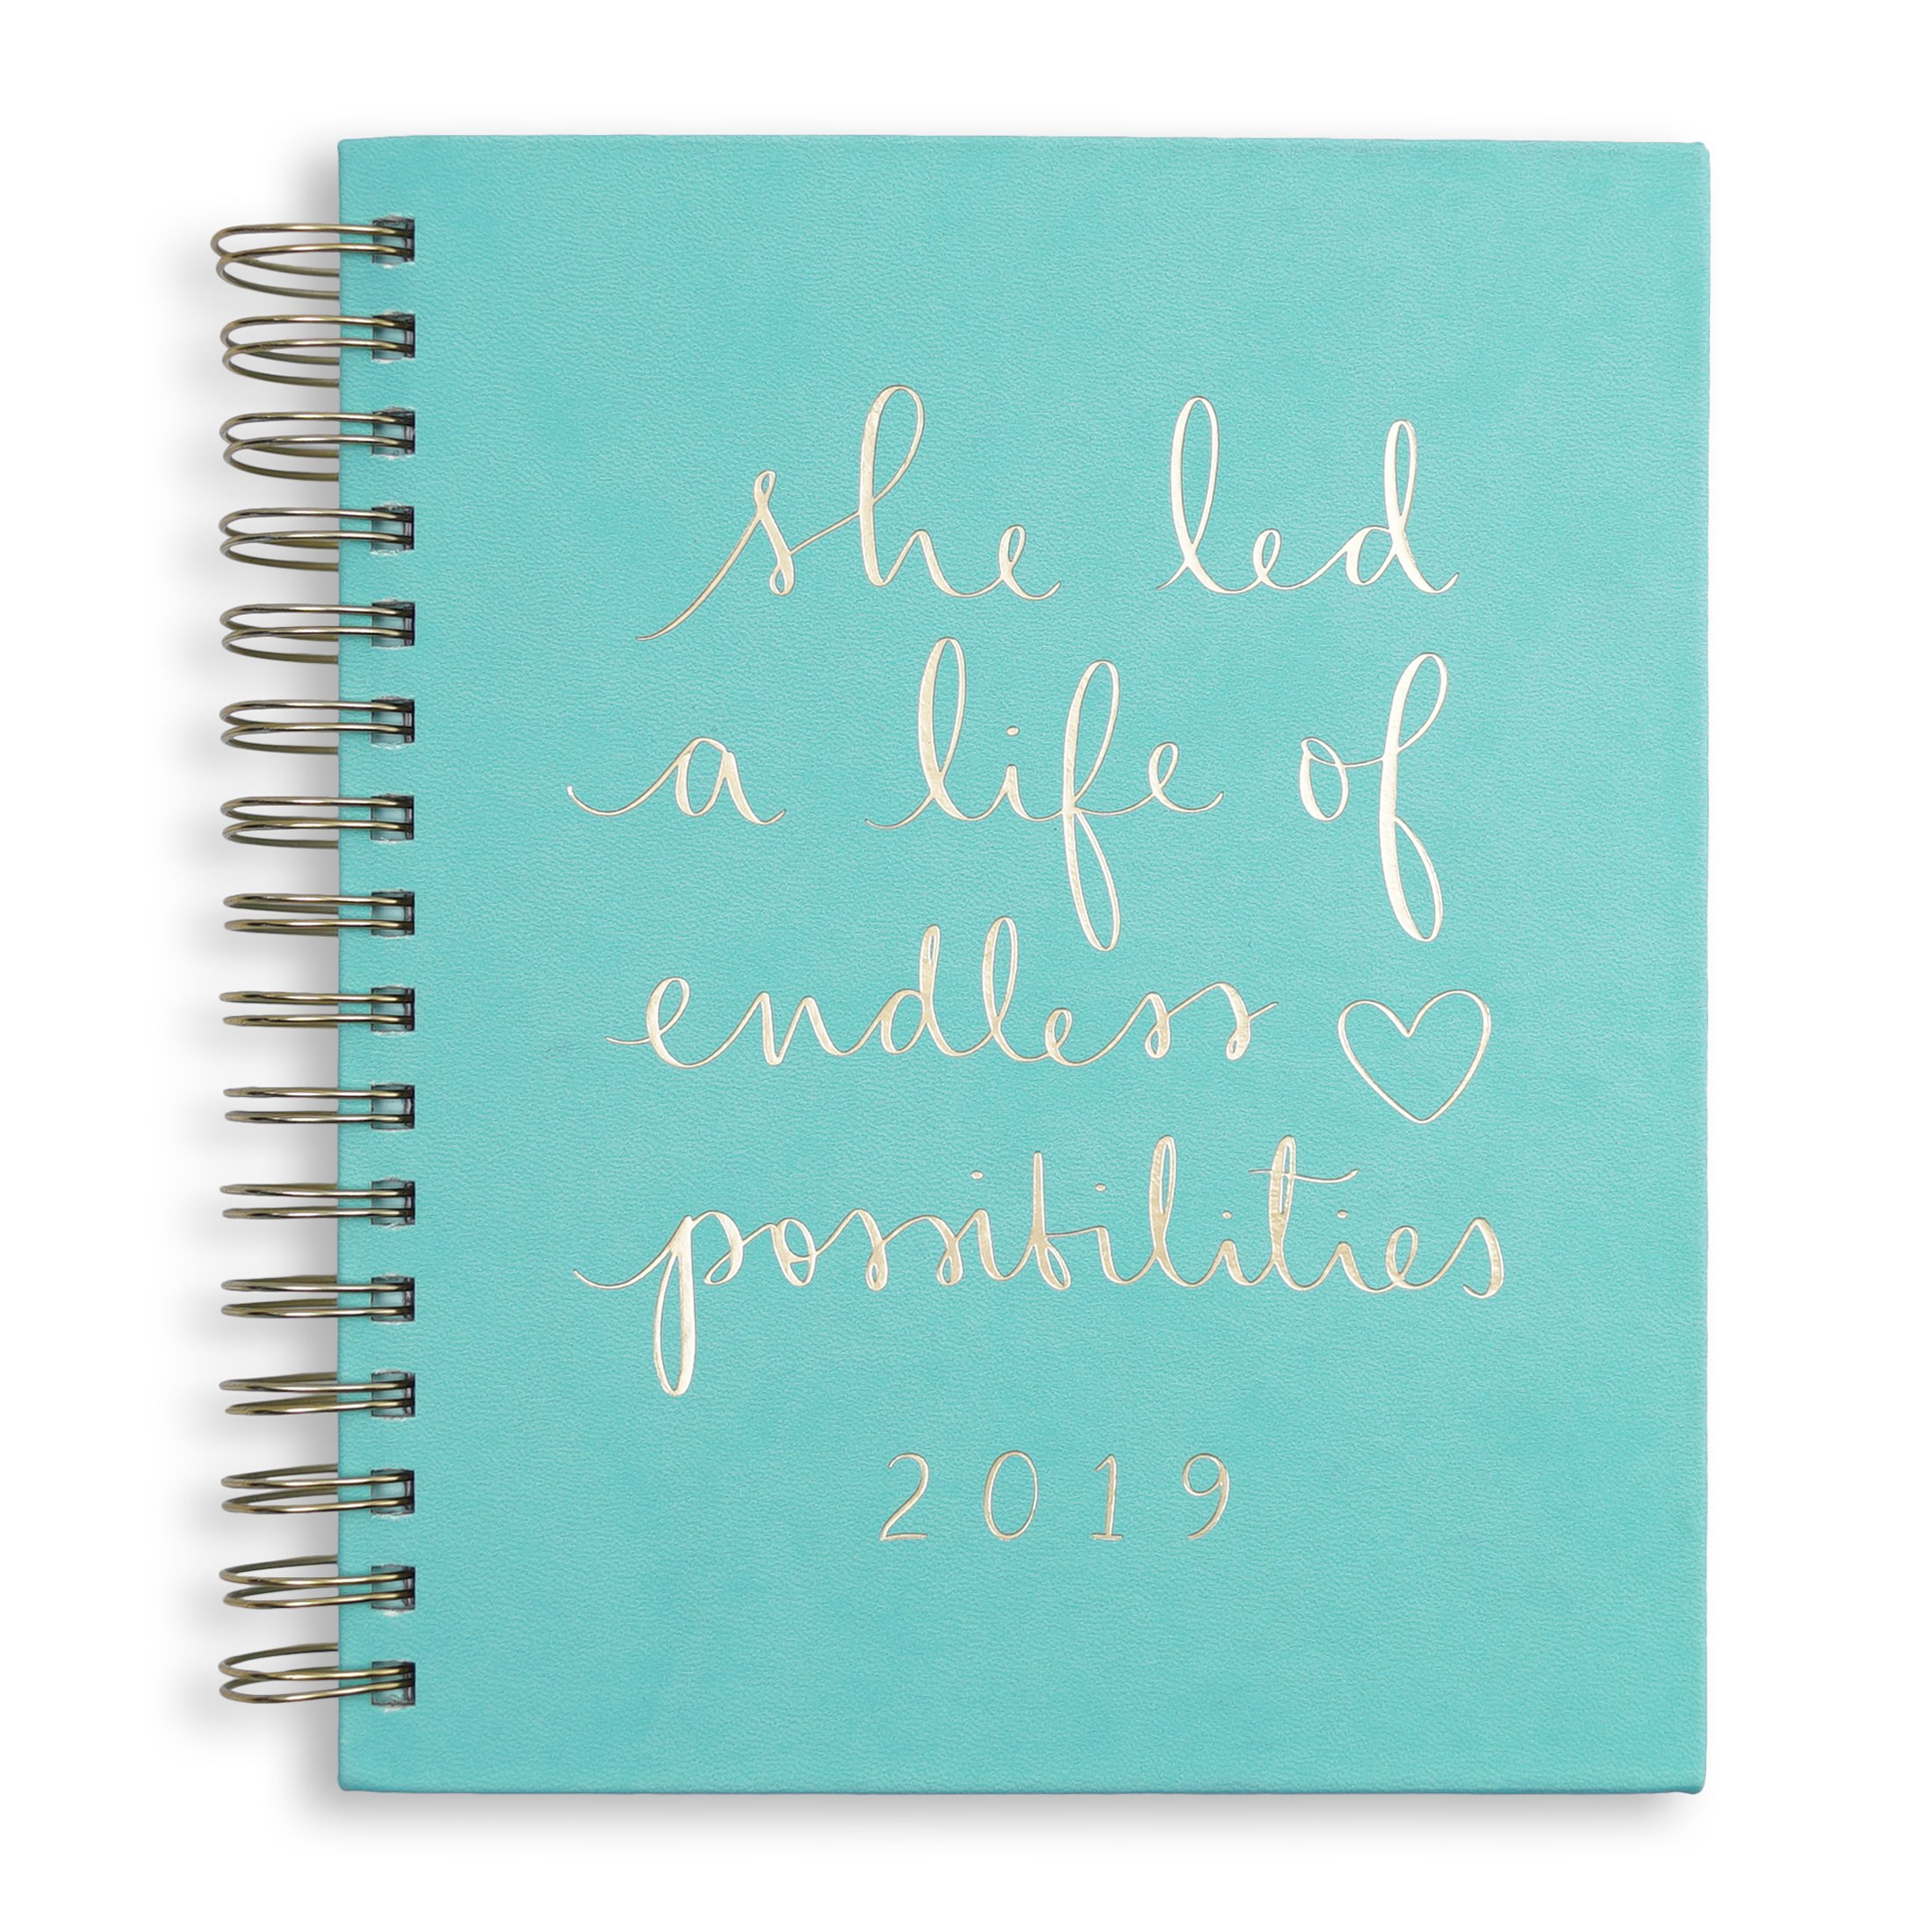 2018-2019 Eccolo Spiral Agenda Planner, Turquoise''She Led a Life'' Hardcover, Weekly & Monthly Views, 18 Months, Sticker Sheets, Full Color Graphics and Quotes. 7.25 x 8.75